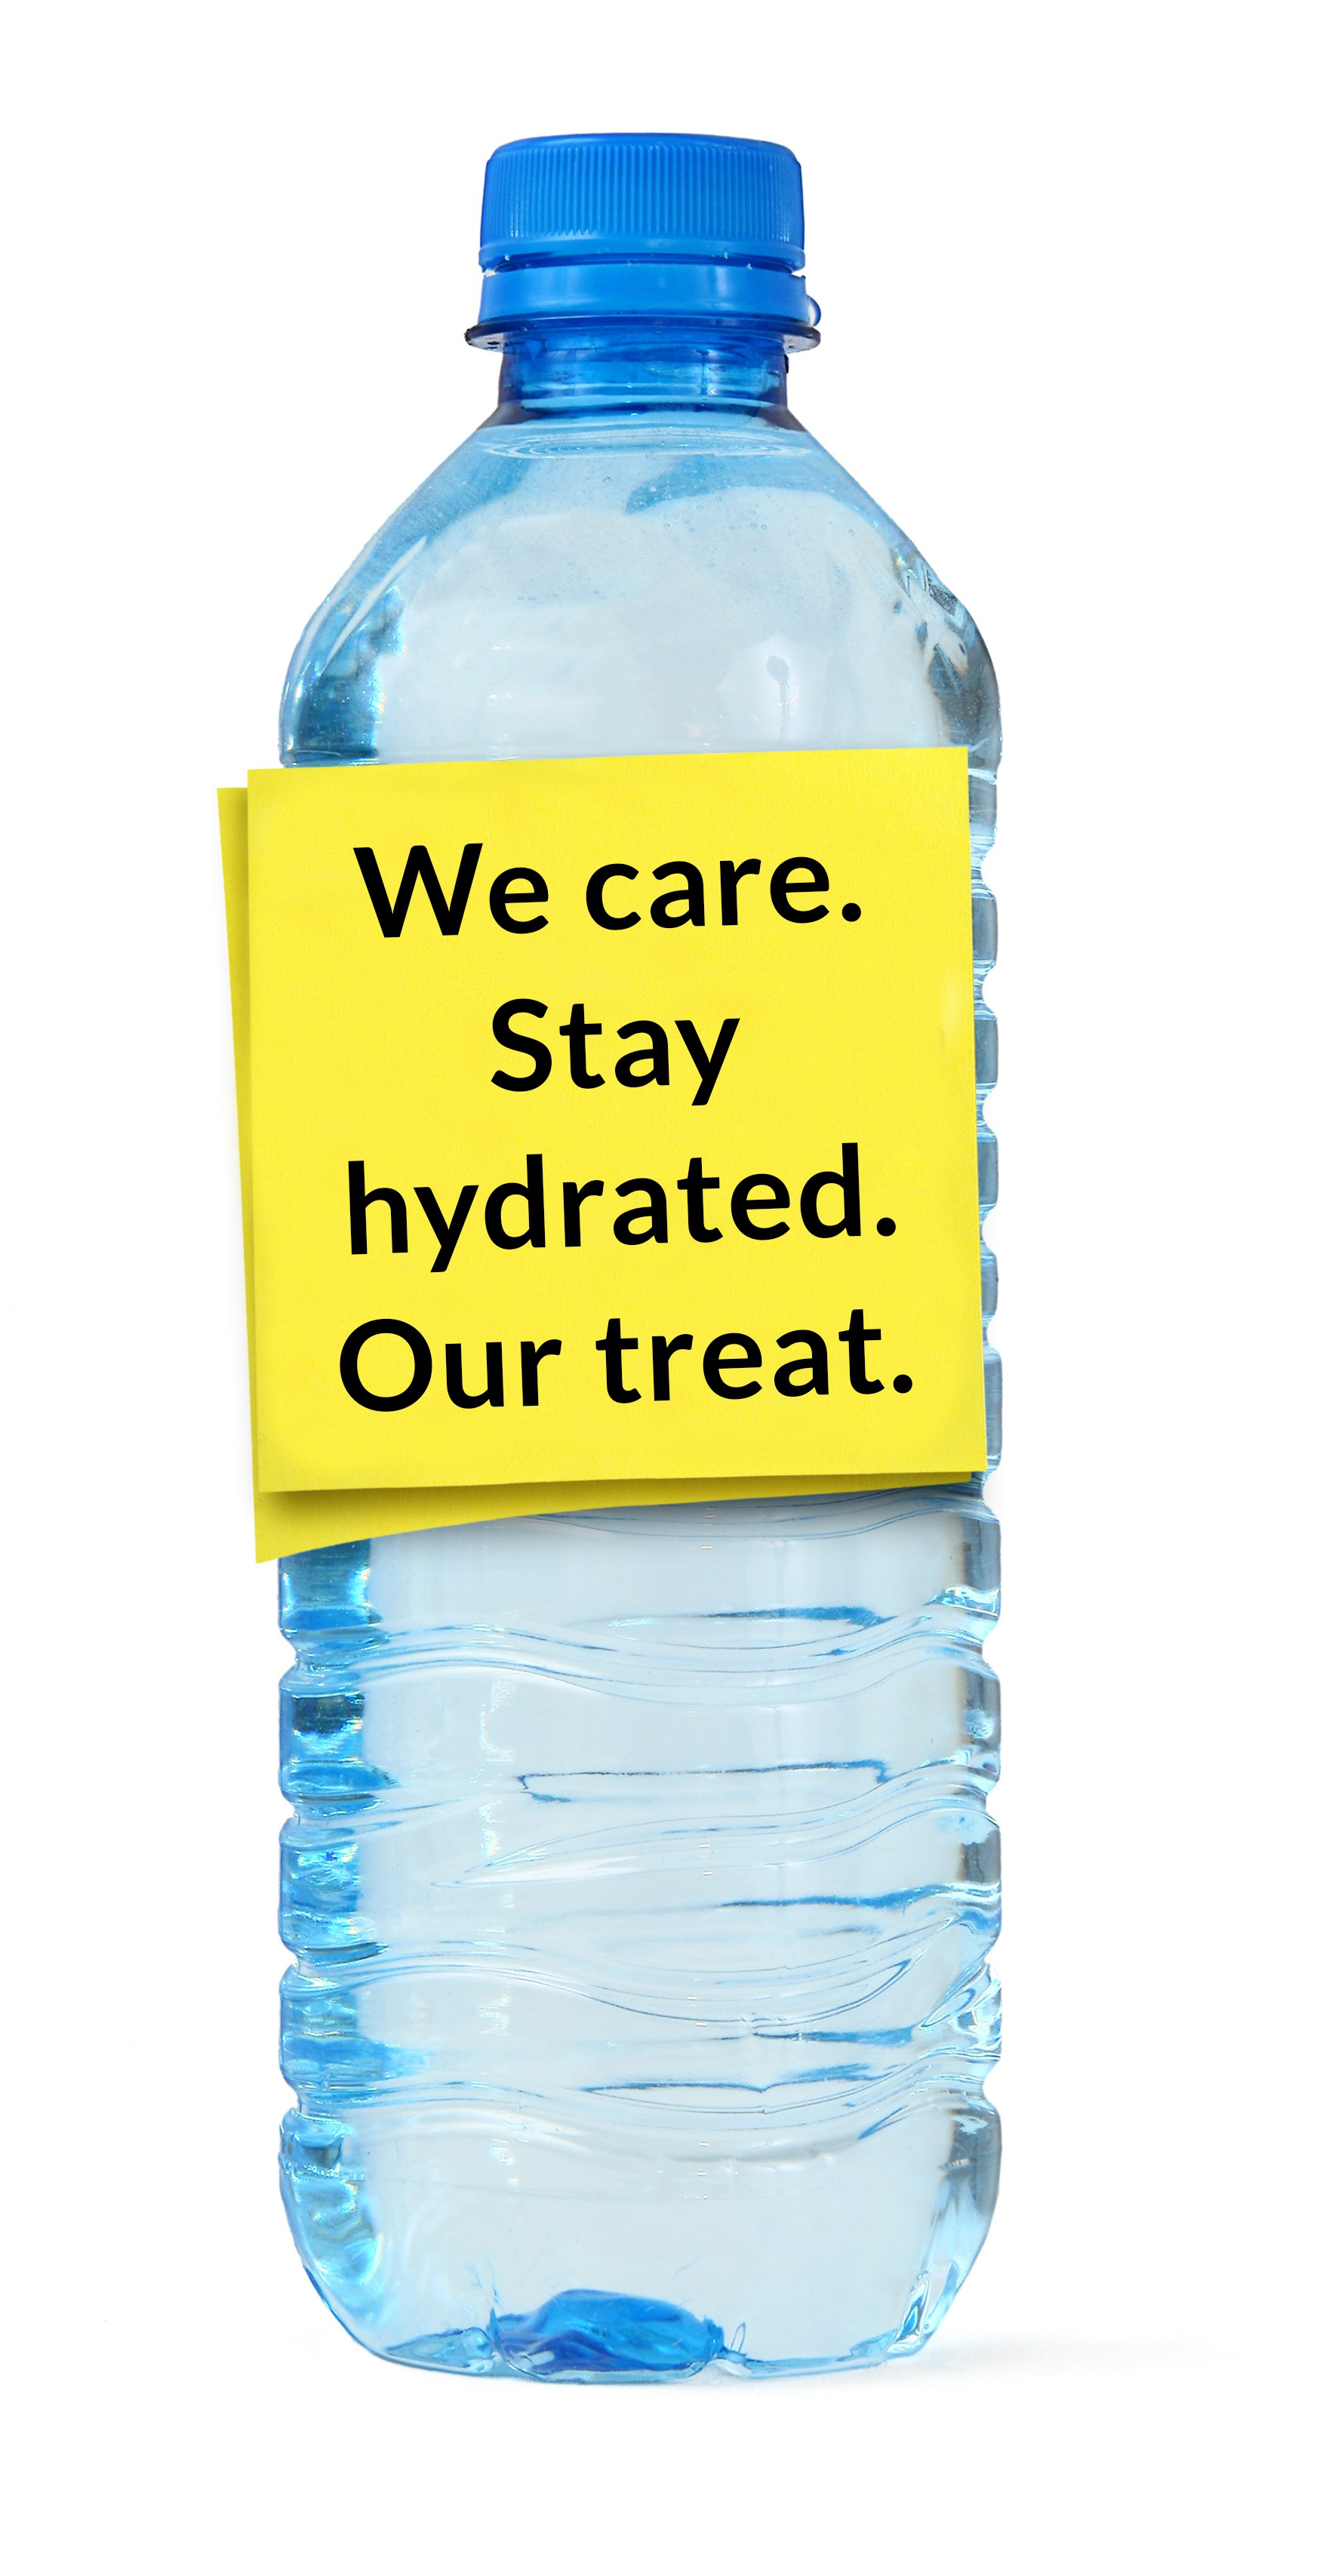 With Hotel Bottled Water Every Drop Counts